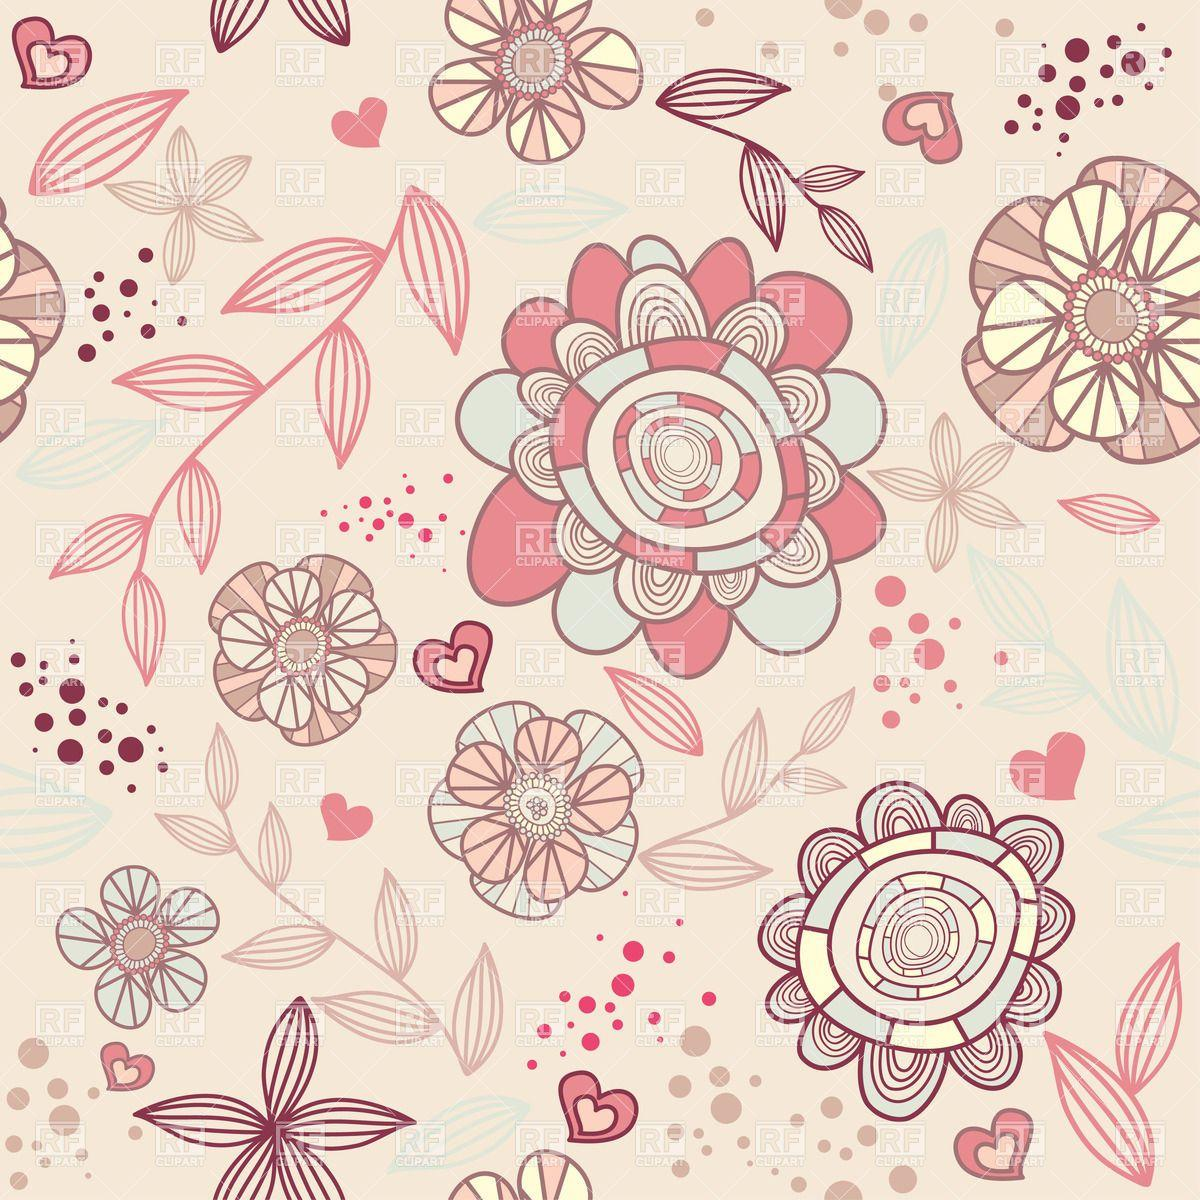 Seamless romantic pastel wallpapers with stylized flowers Vector